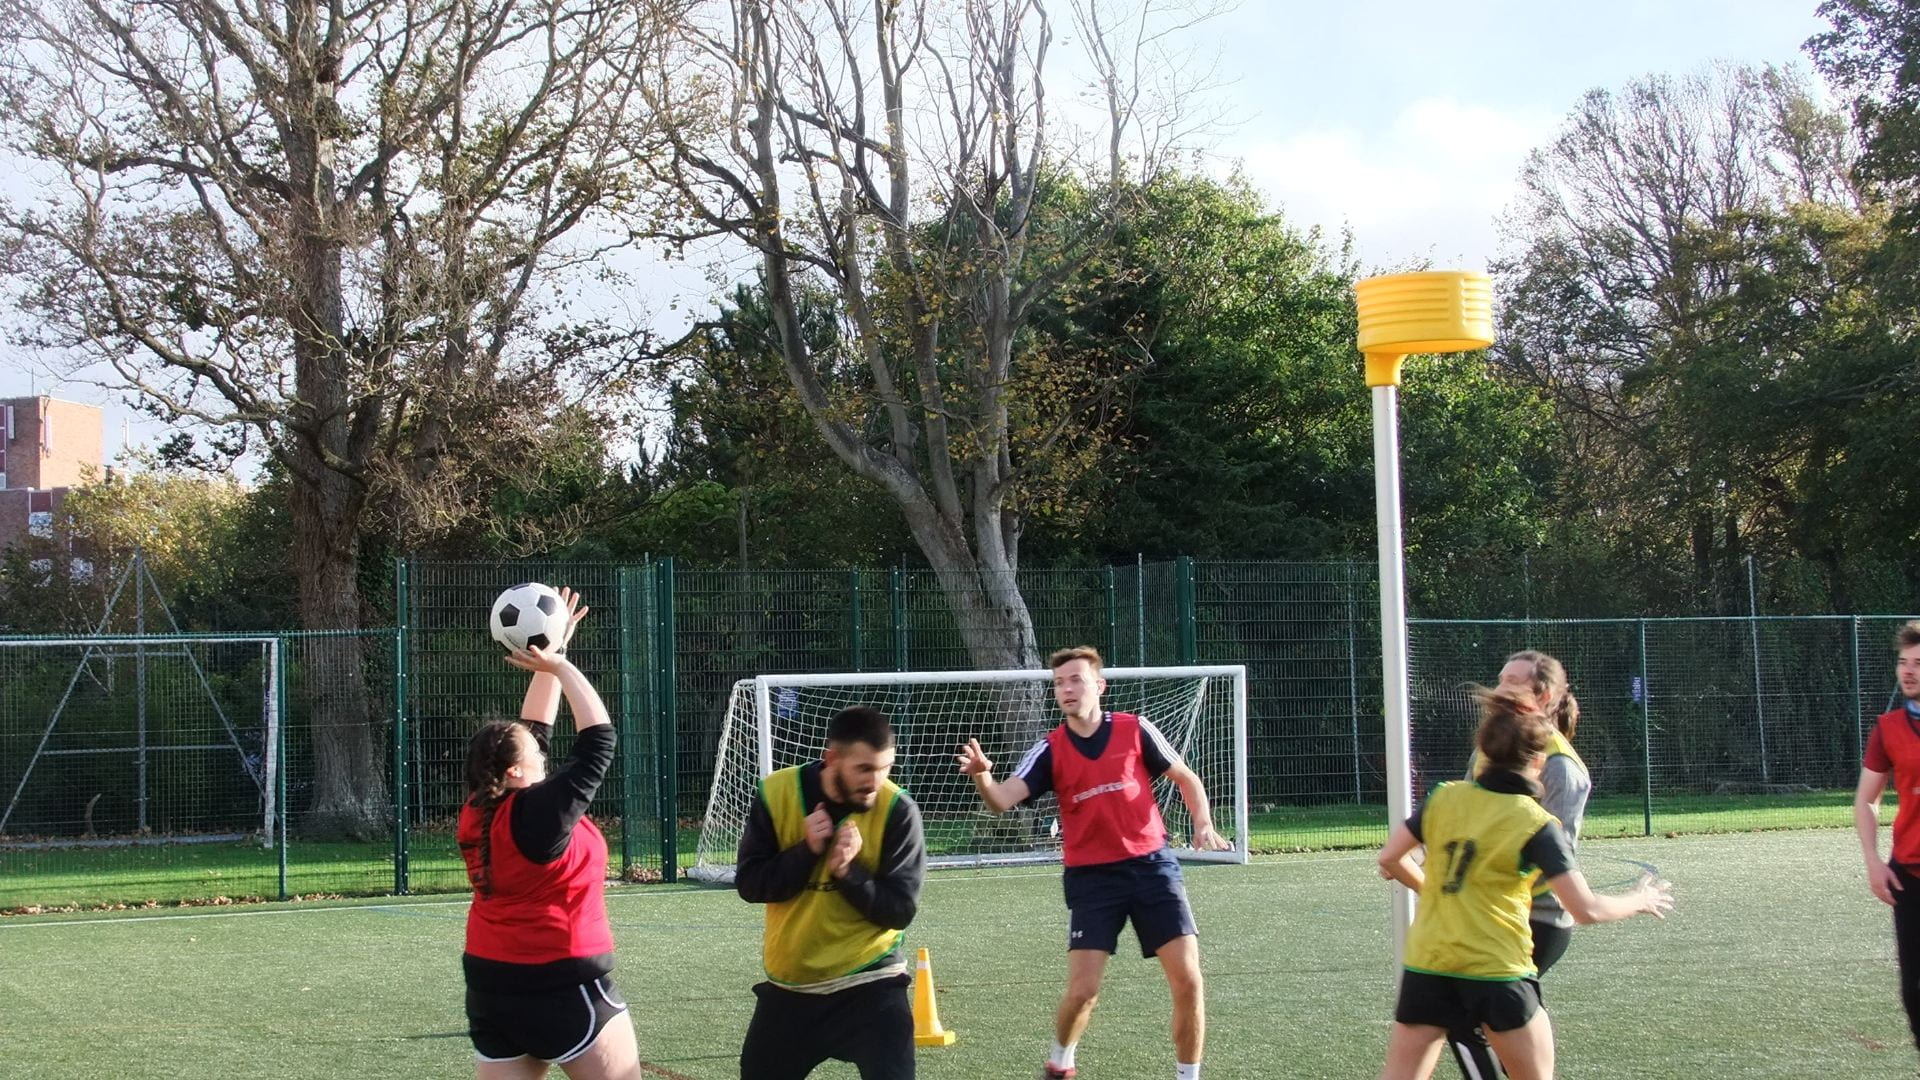 students playing on the outdoor pitch